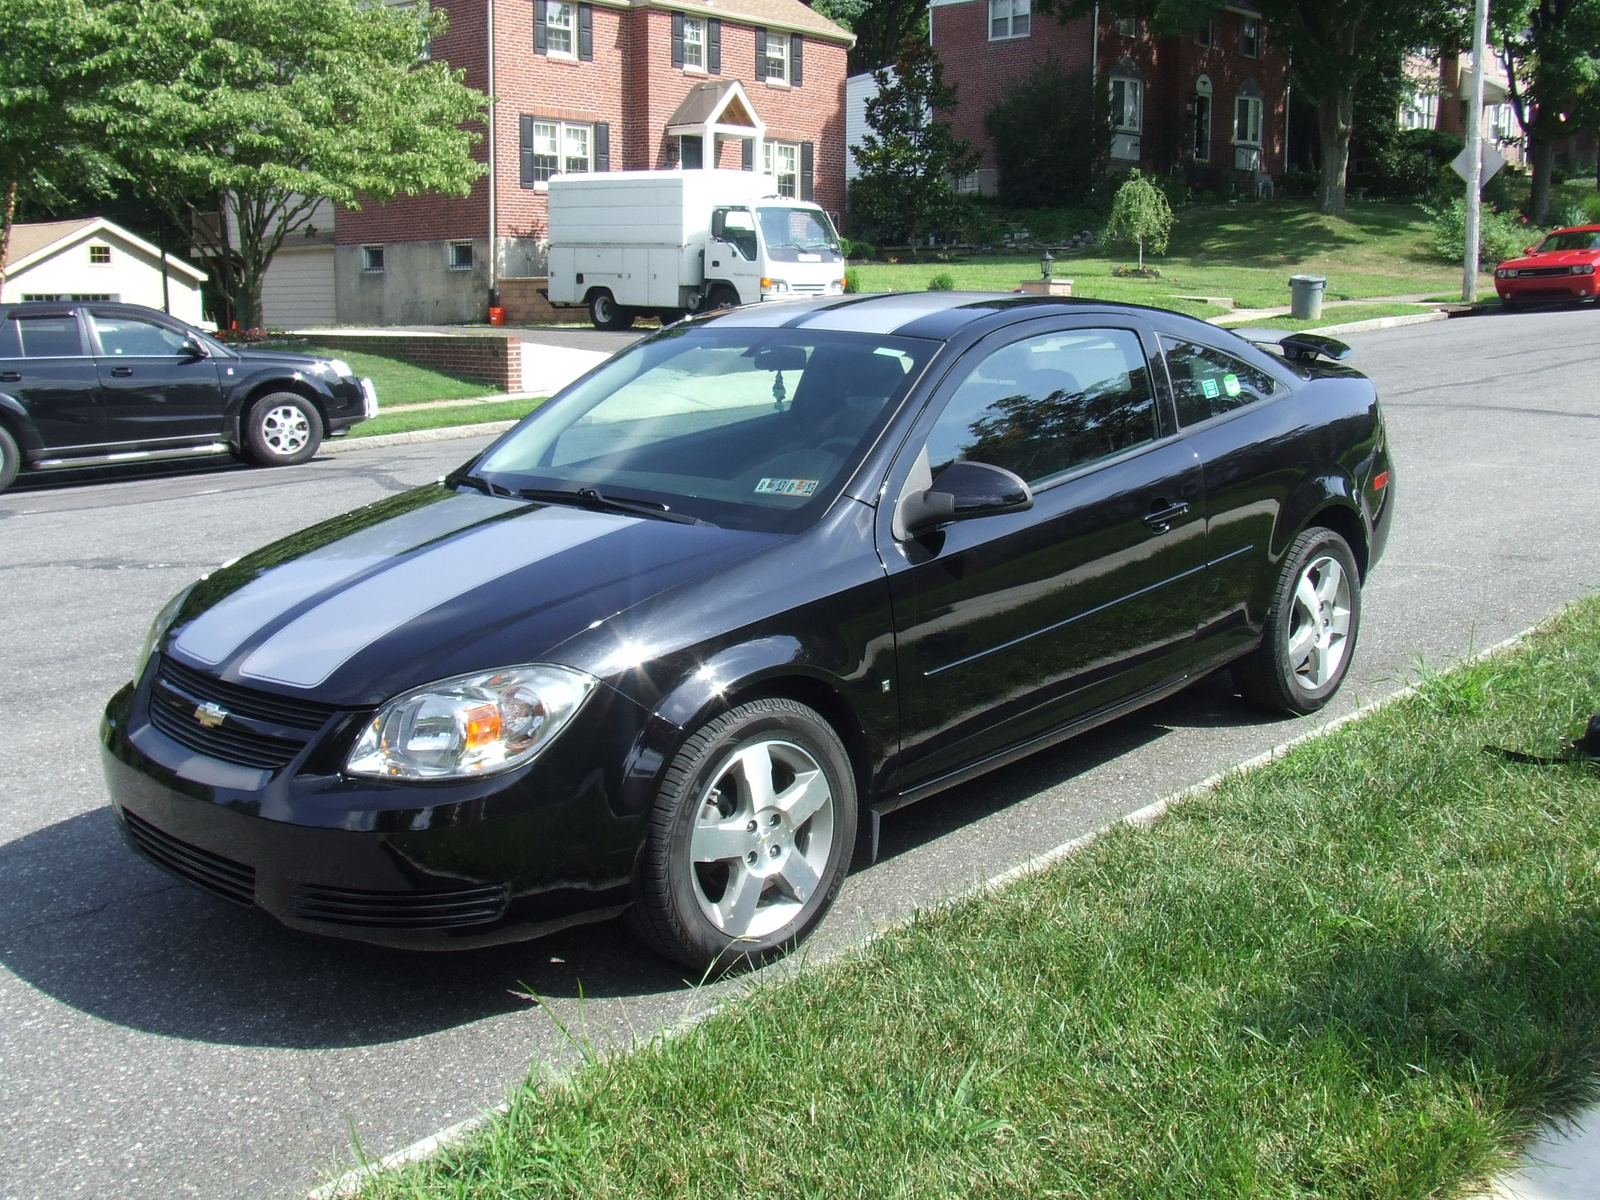 Picture of 2008 Chevrolet Cobalt LT1 Coupe, exterior